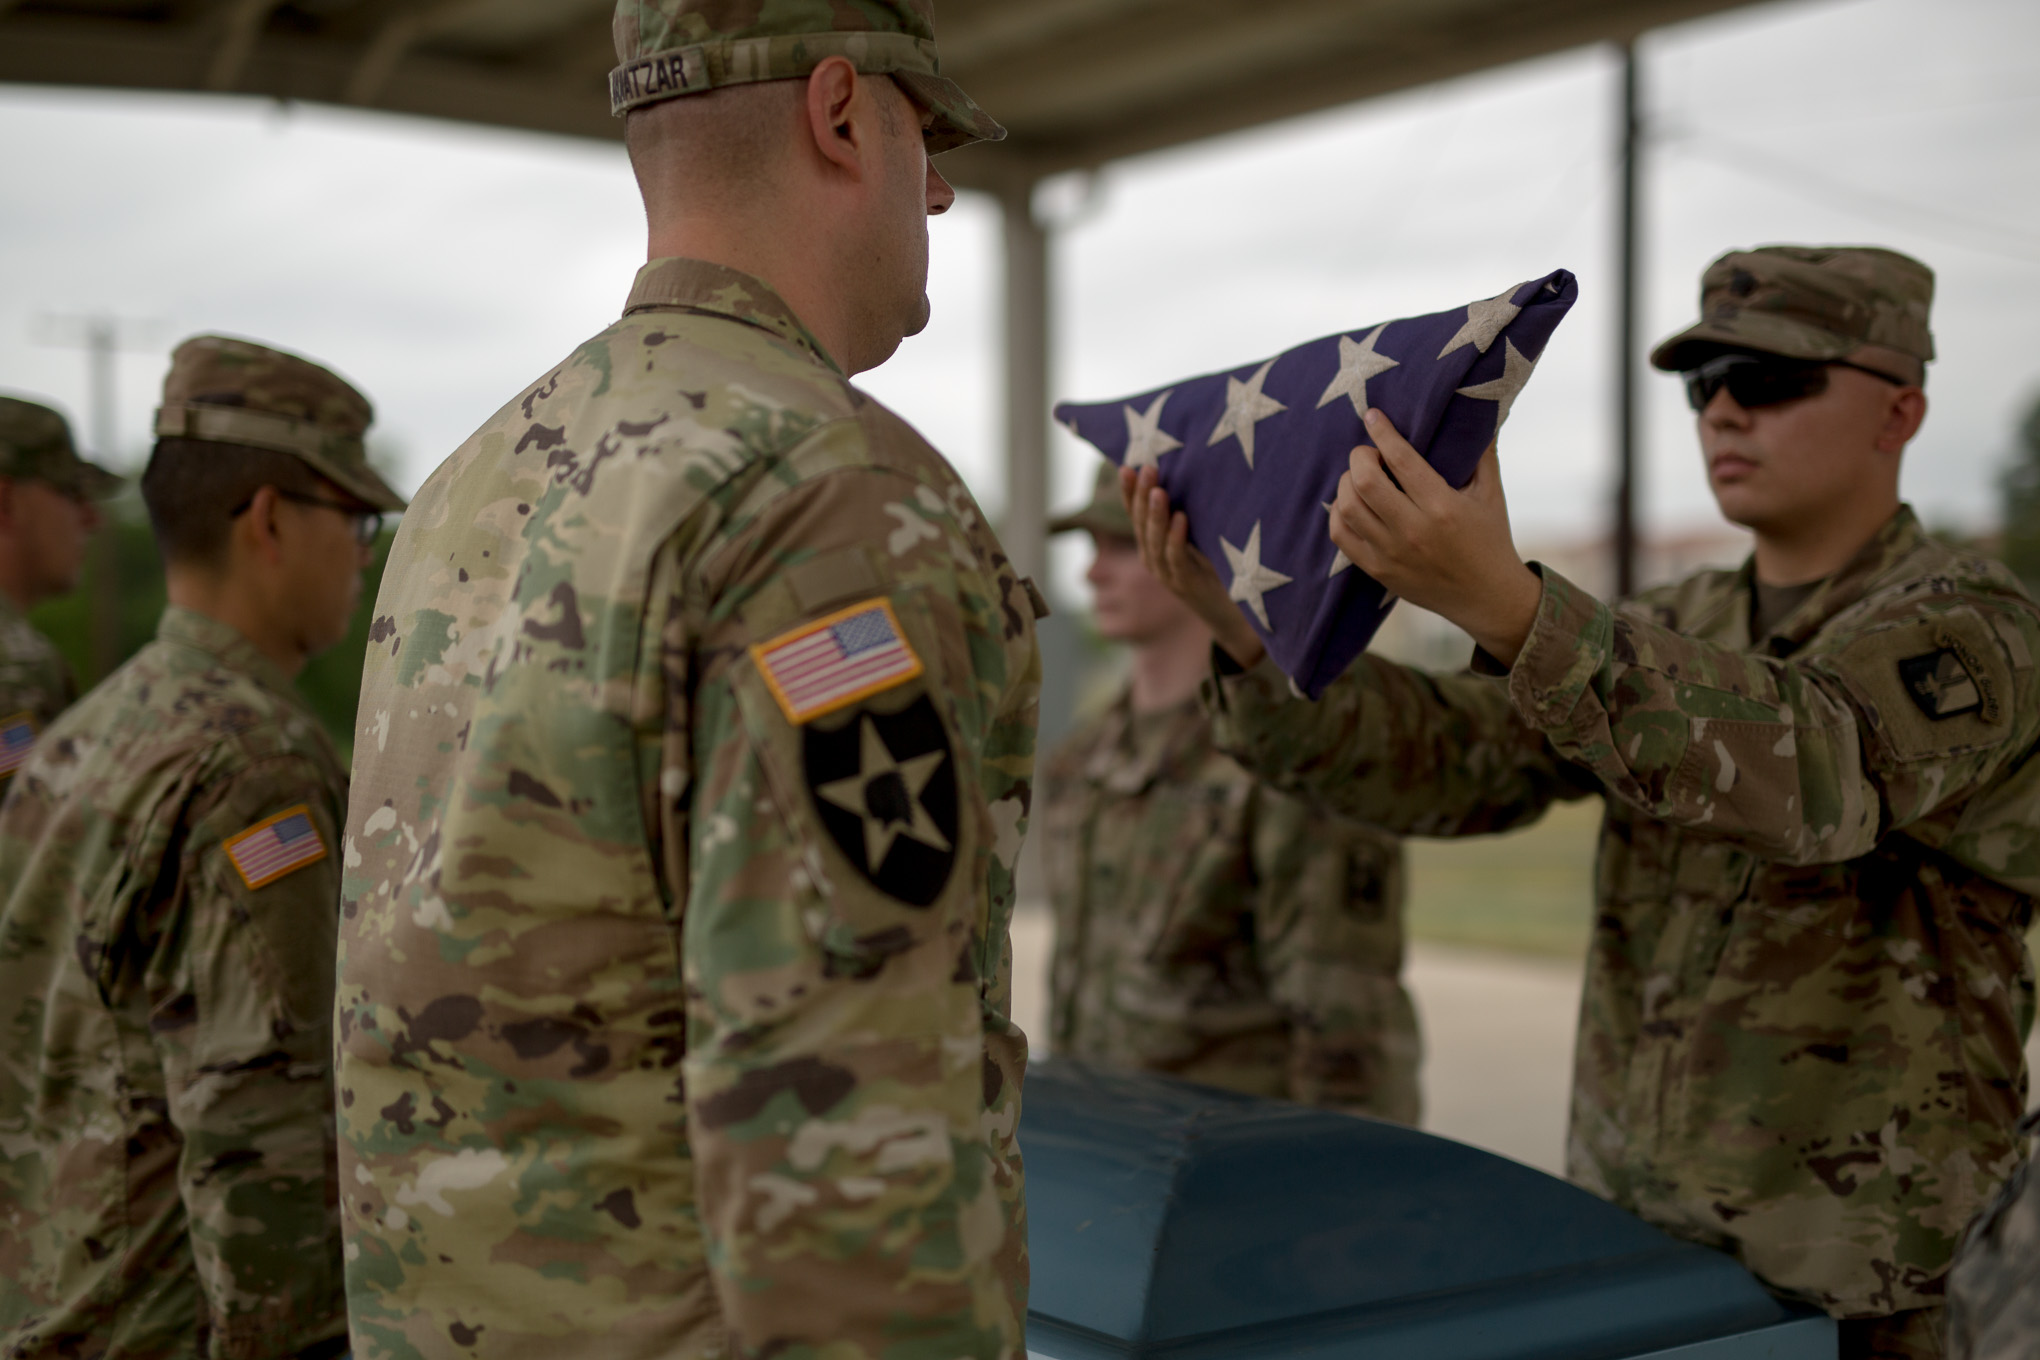 Caisson Unit members present the United States Flag during a practice.